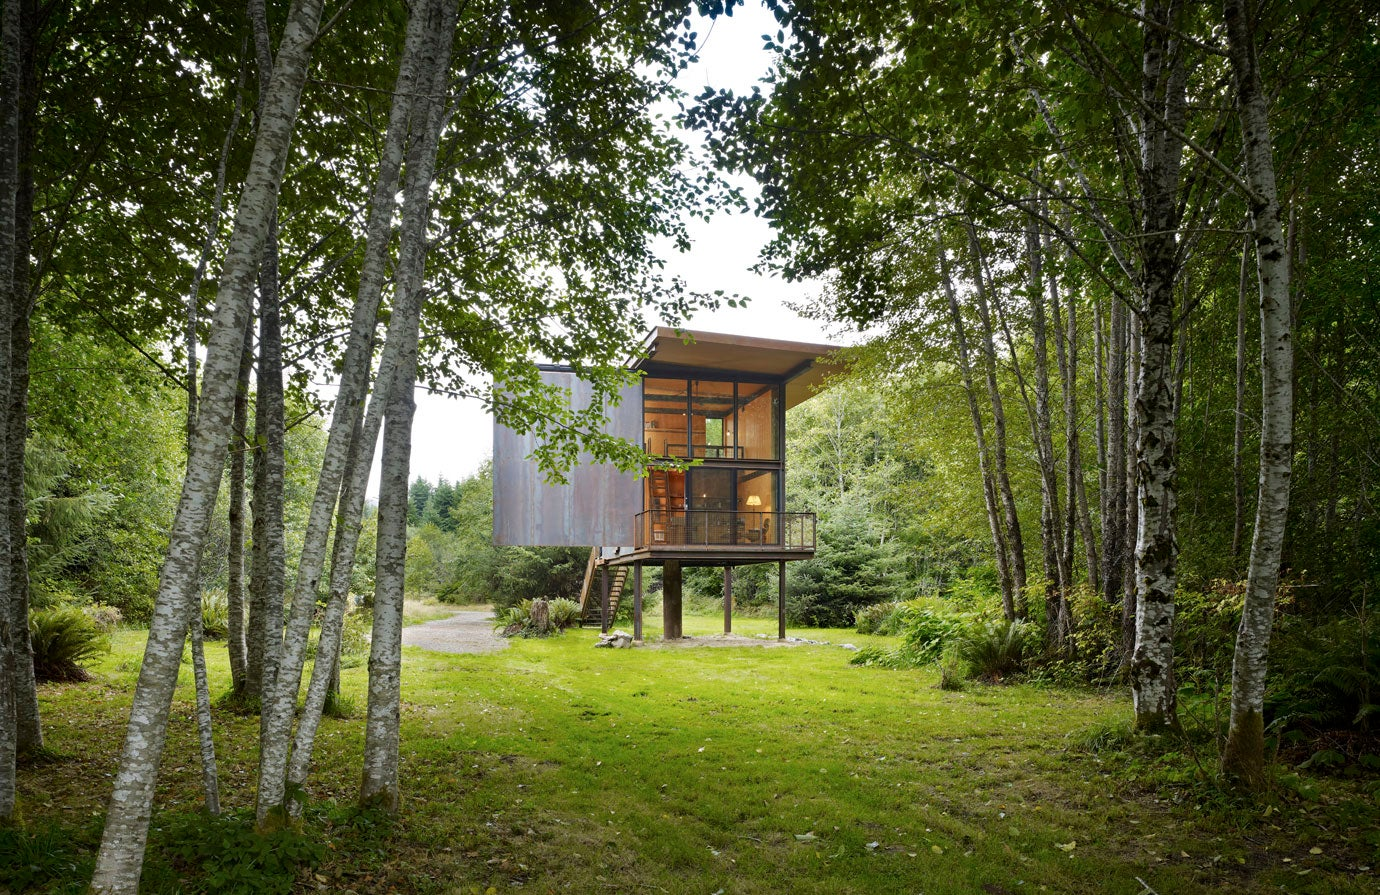 The 10 Best Houses of the Year